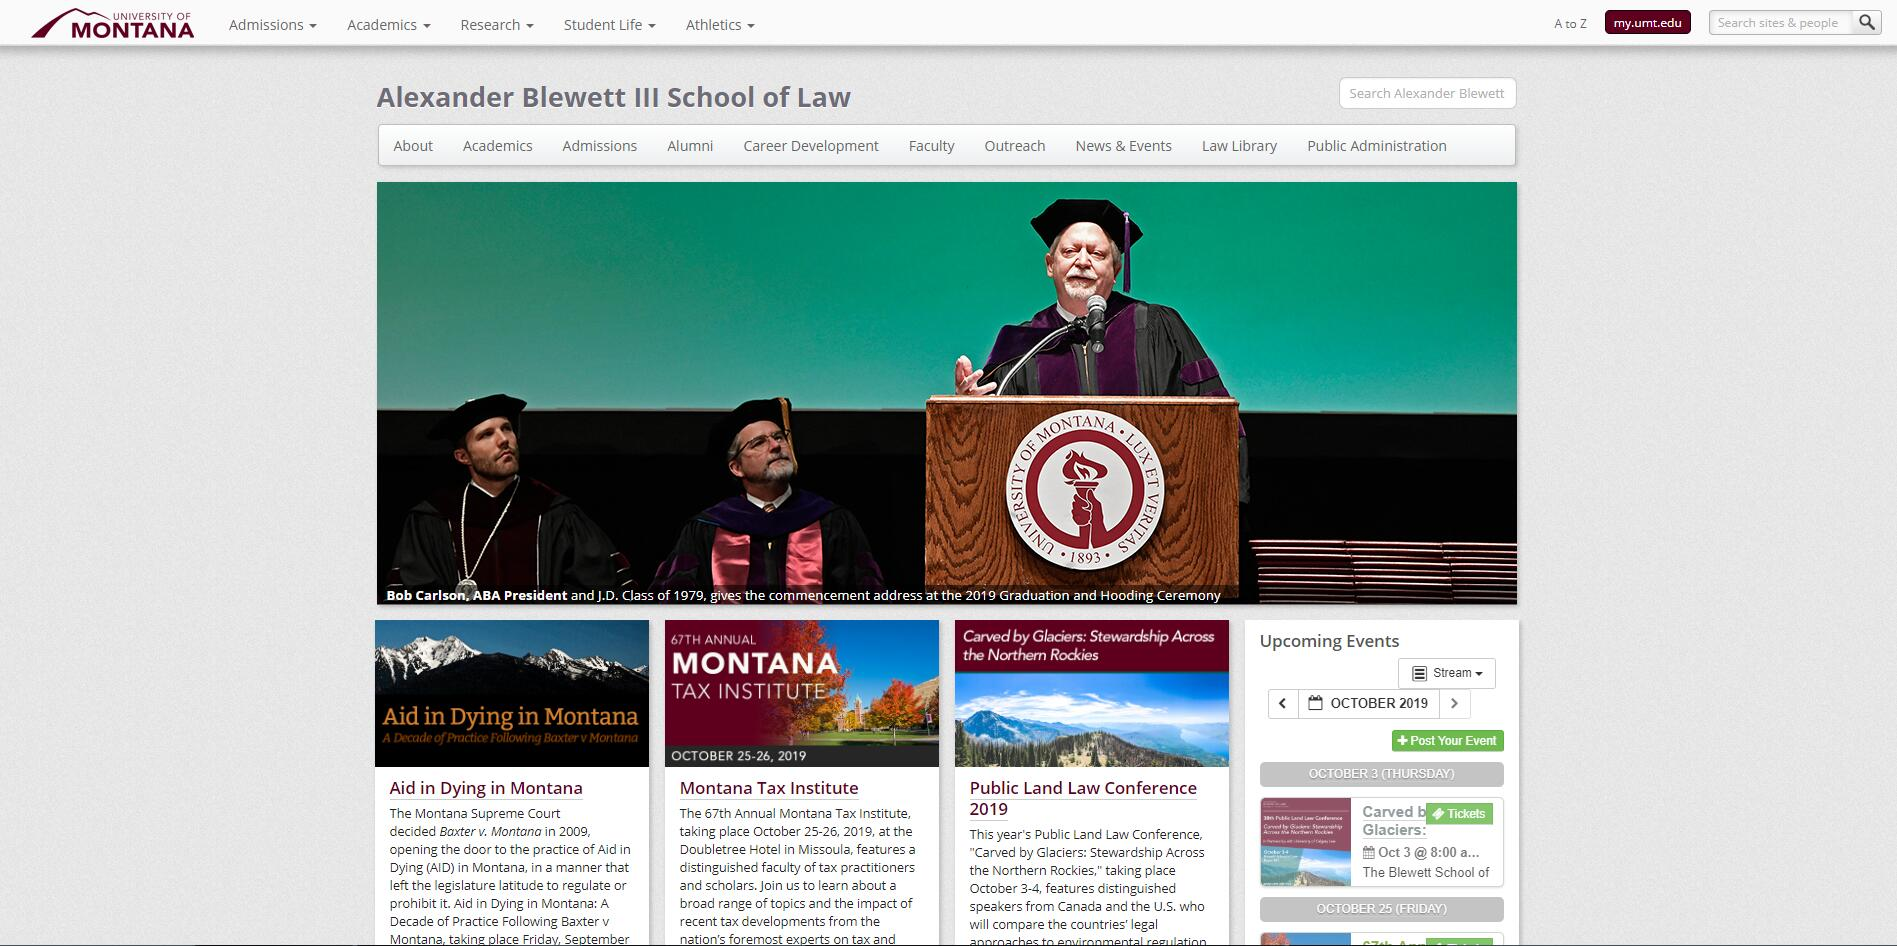 The School of Law at University of Montana